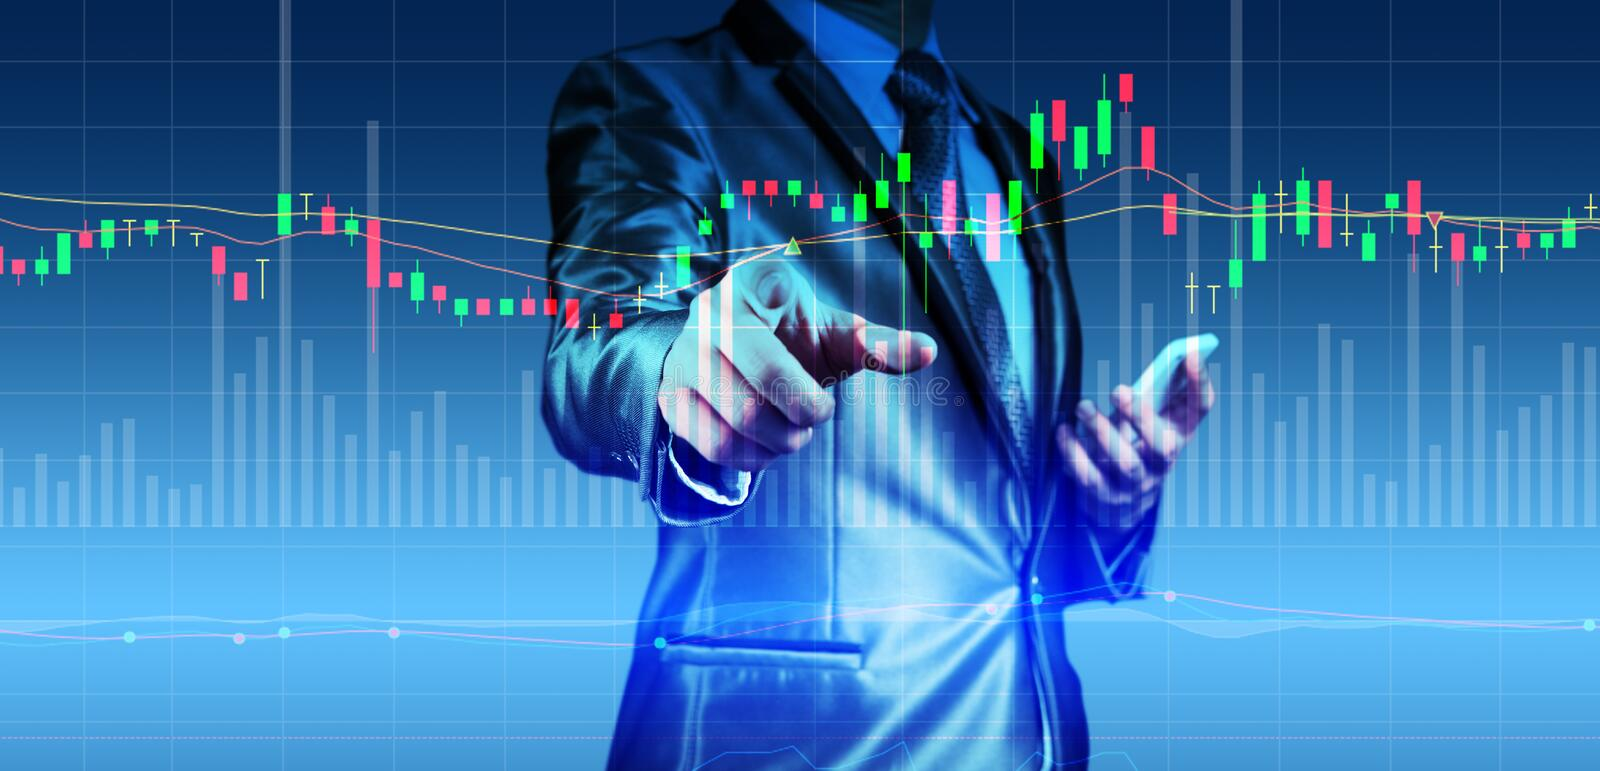 Double exposure of businessman with stock market chart royalty free stock photo